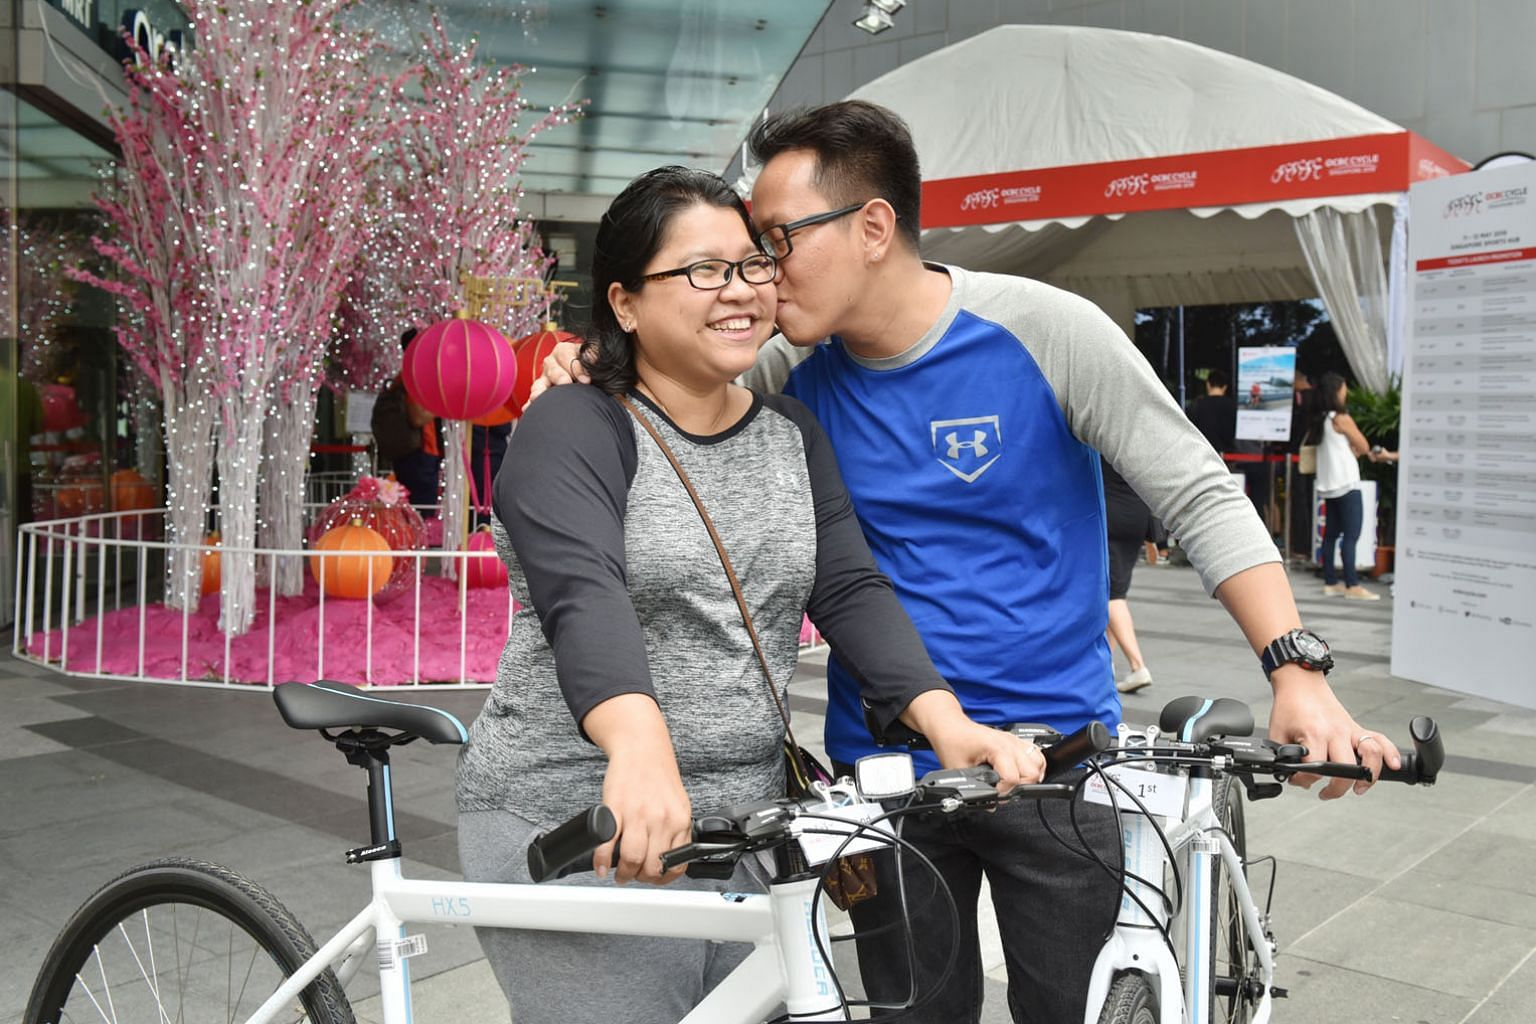 Michelle Myat and husband Bryan Phyo with the bikes they received as gifts for being the first two people in the queue to register for the OCBC Cycle event.